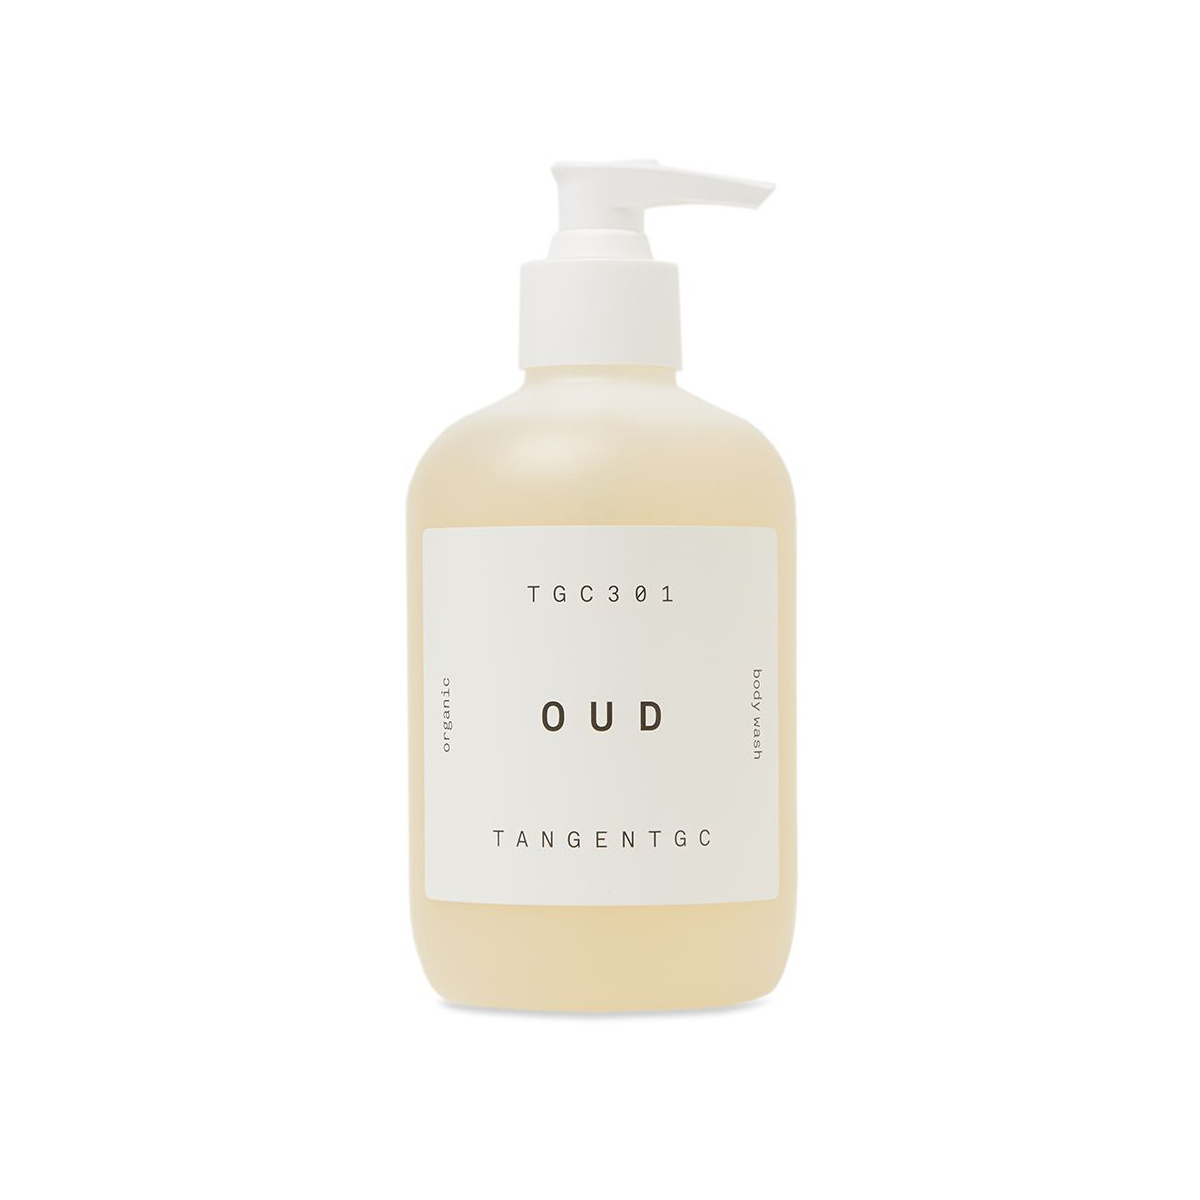 Tangent GC Oud Organic Body Wash